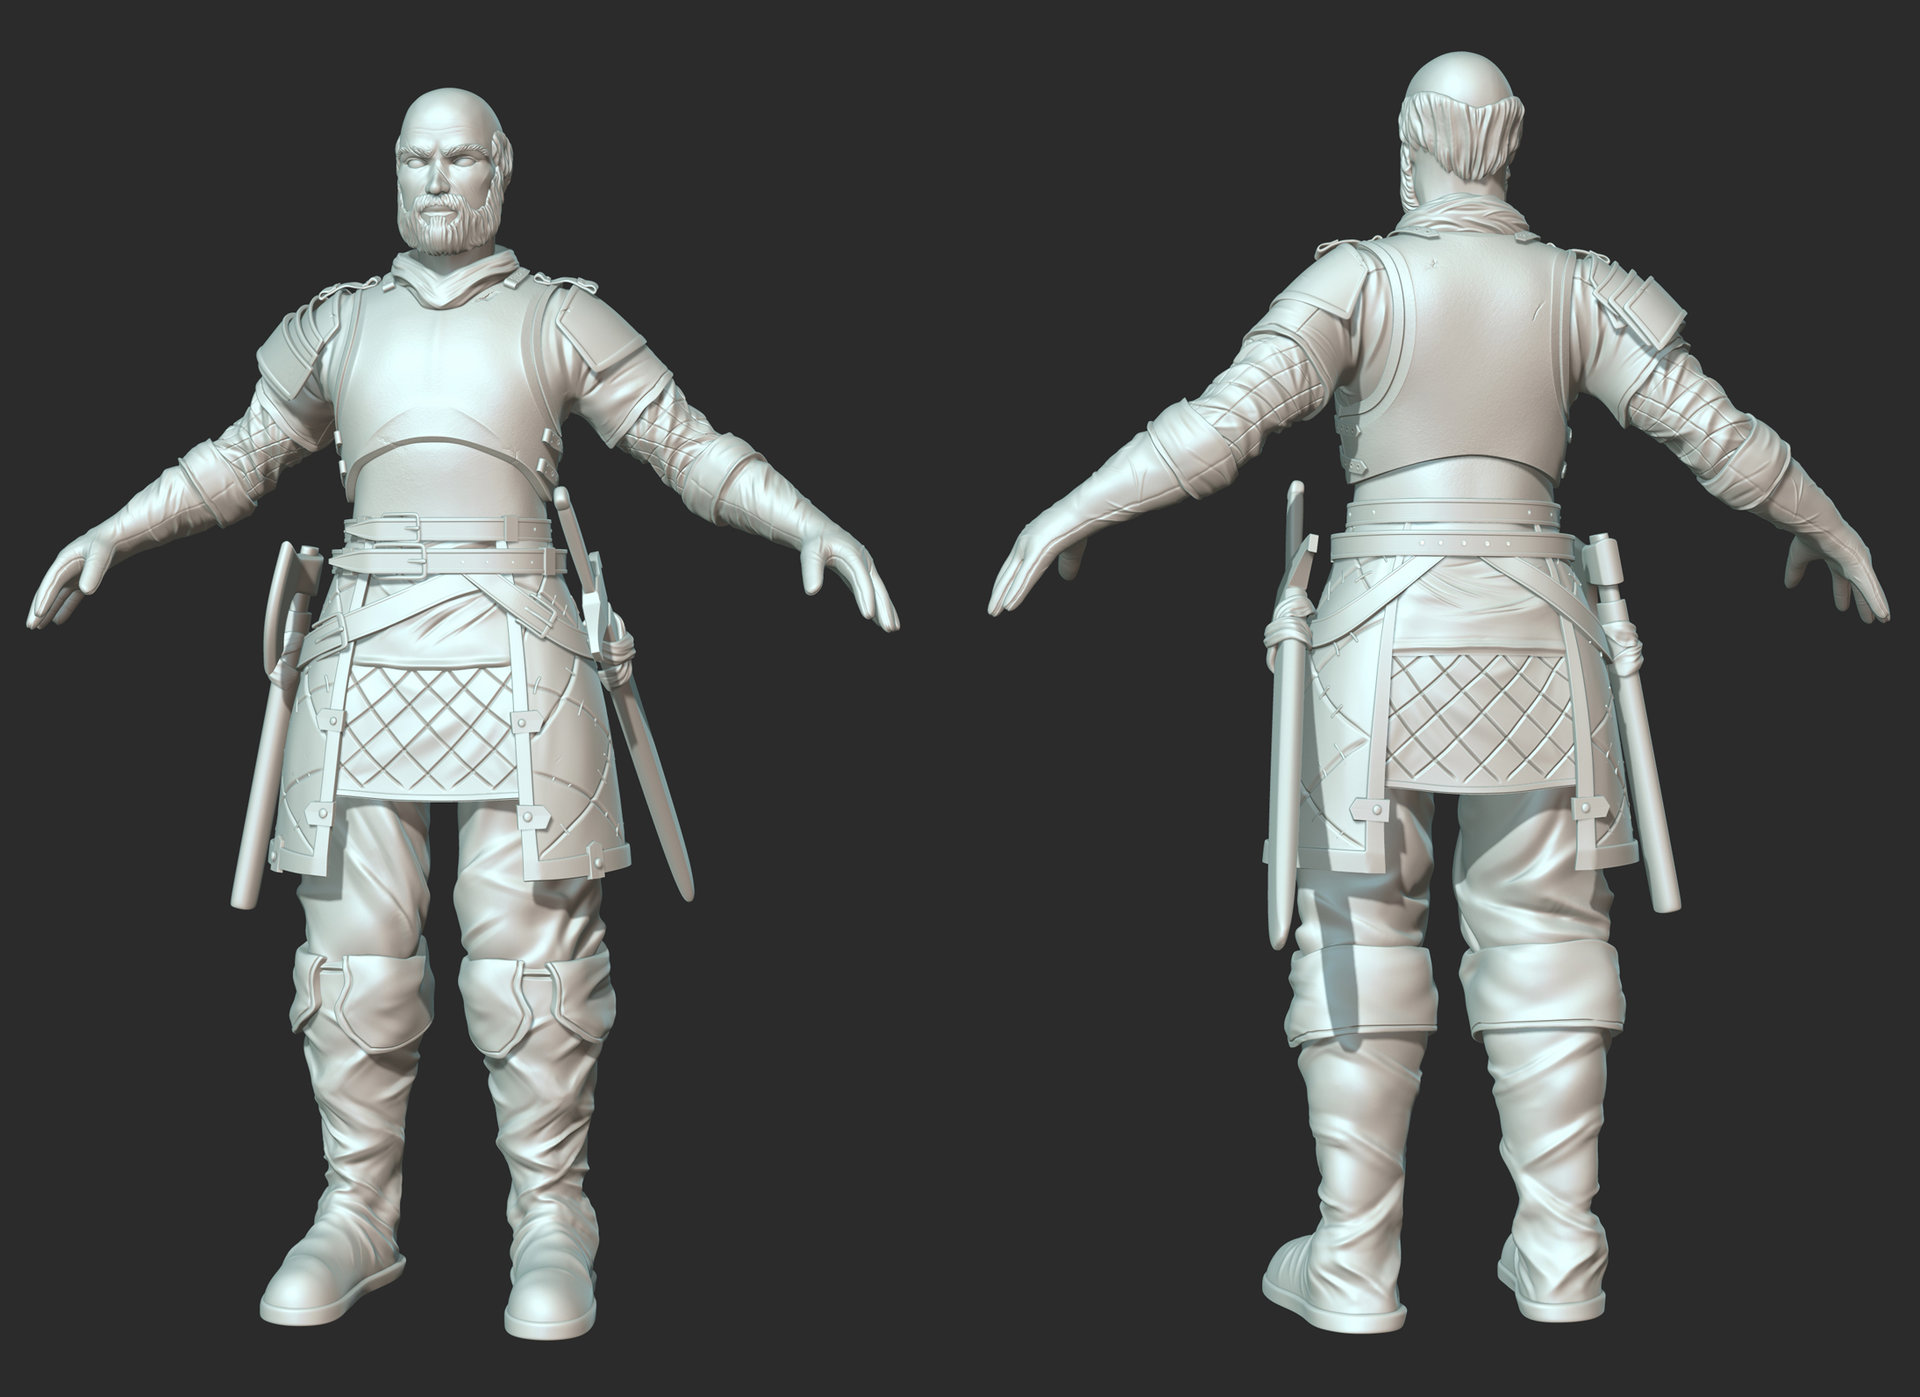 the Medieval Dude - Sculpt